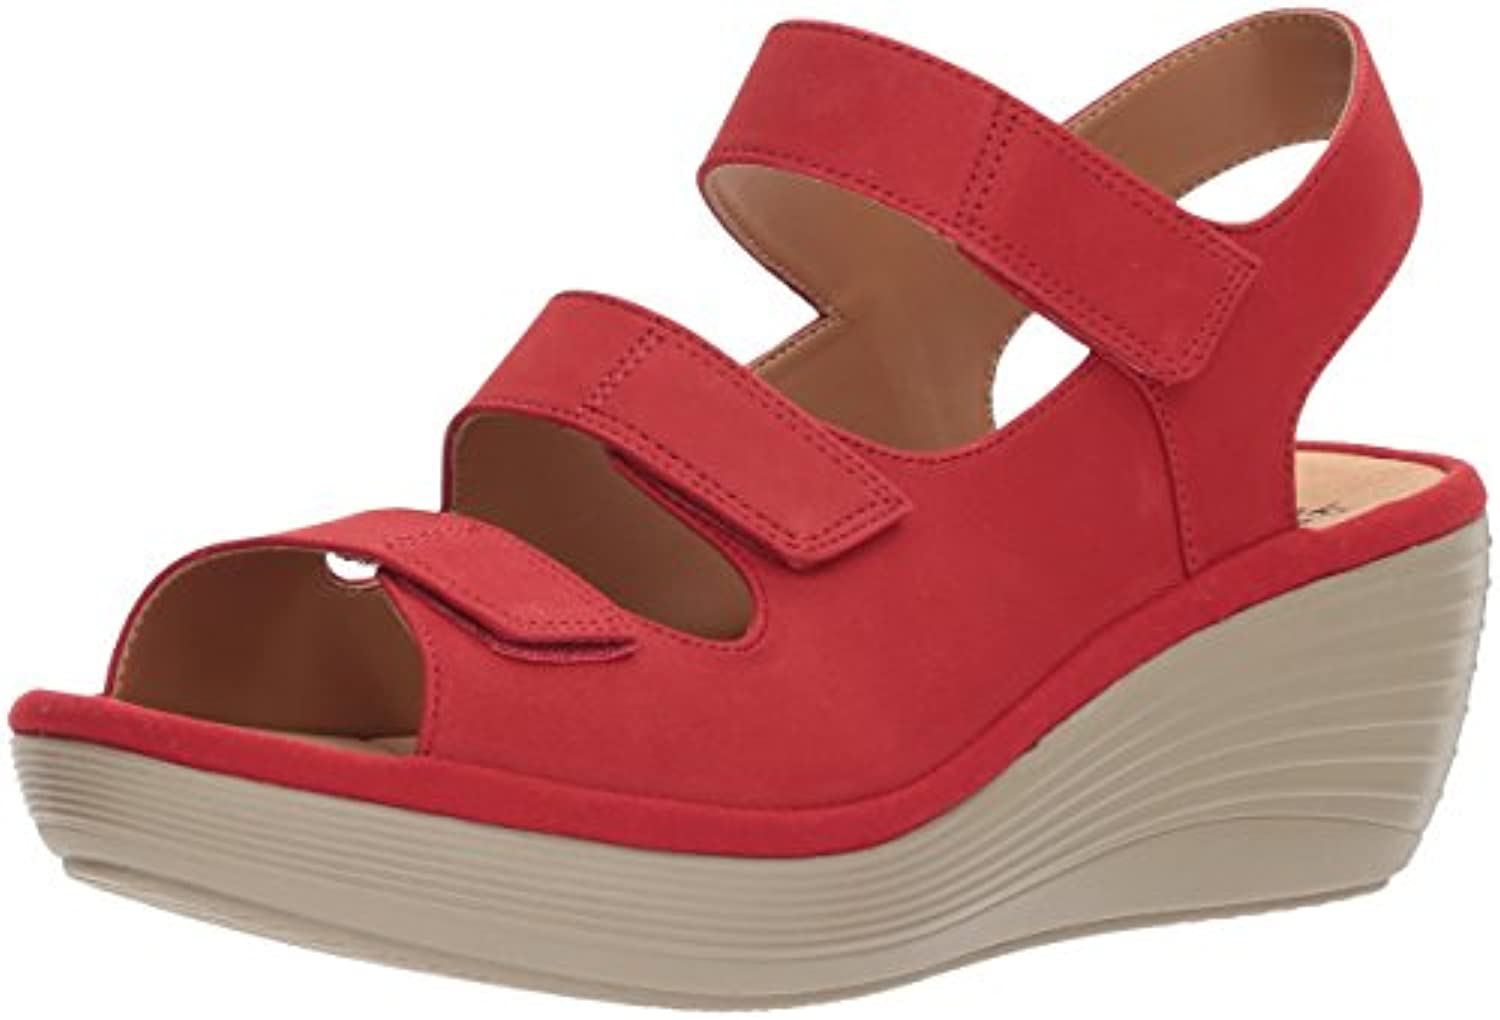 Clarks Wouomo Reedly Juno Wedge Sandal, rosso Nubuck, 9 Medium US | Acquisti online